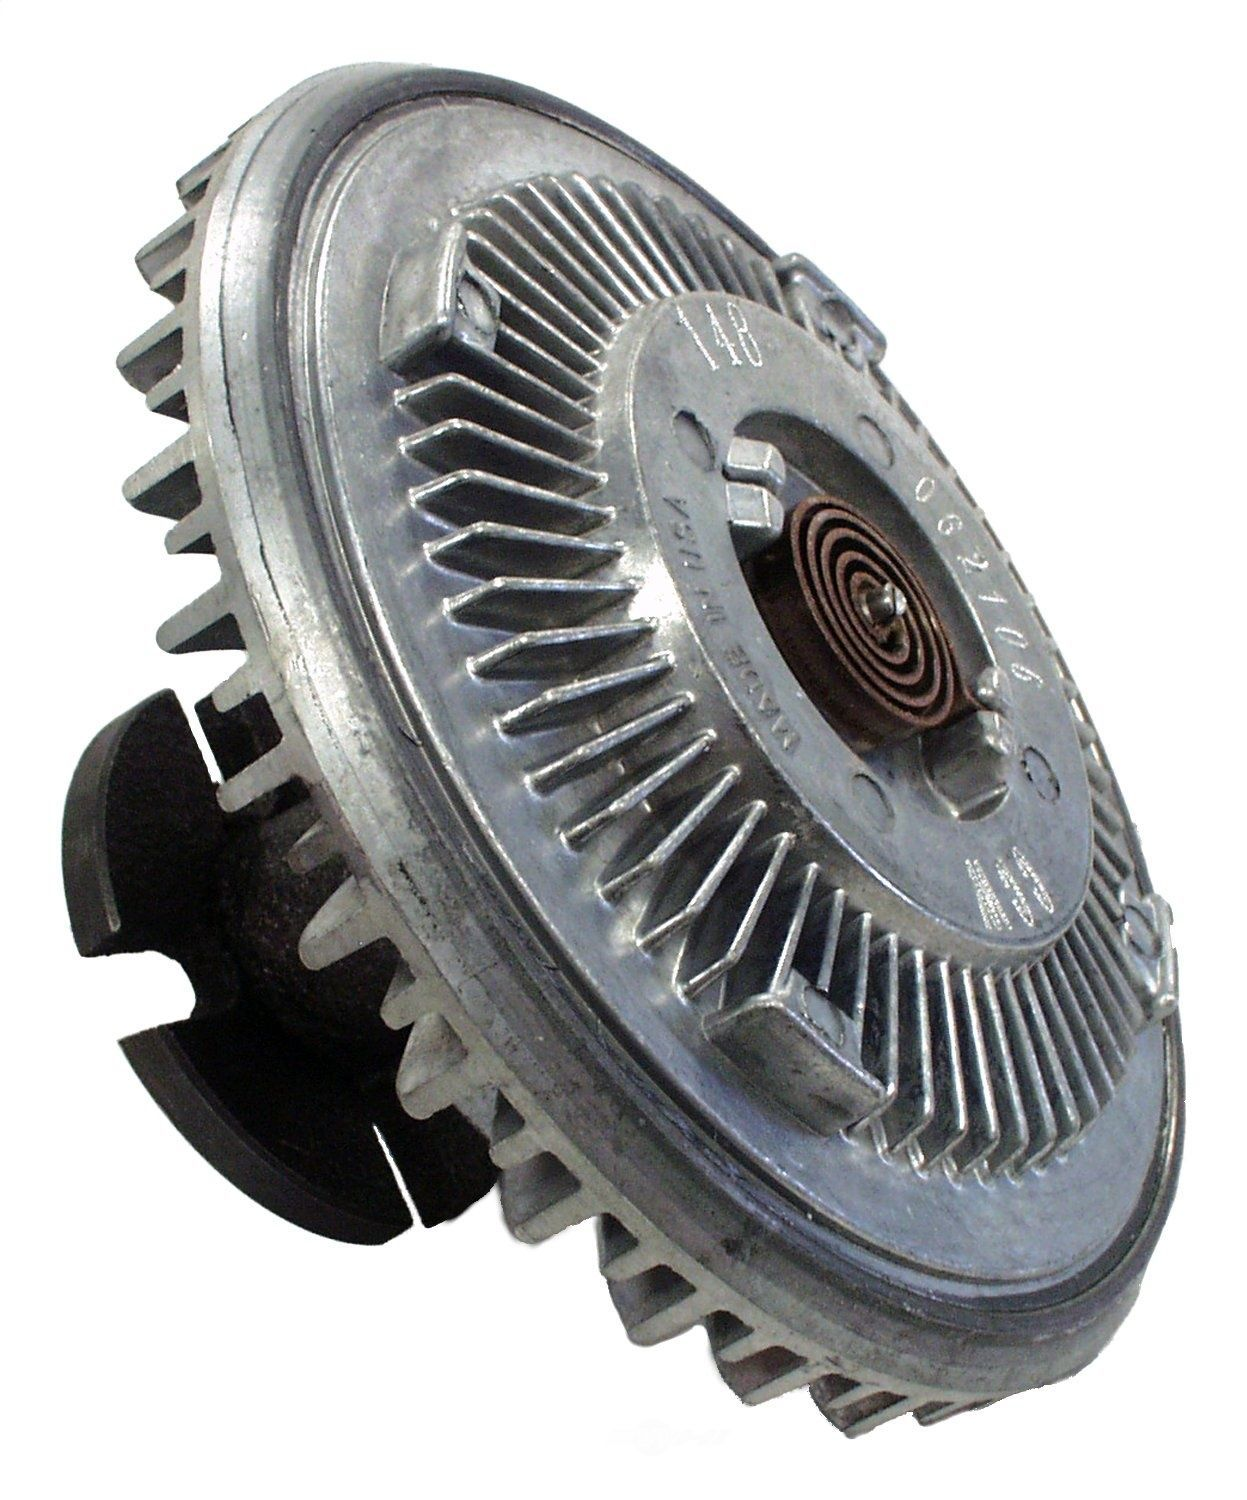 CROWN AUTOMOTIVE SALES CO. - Fan Clutch - CAJ 52003205